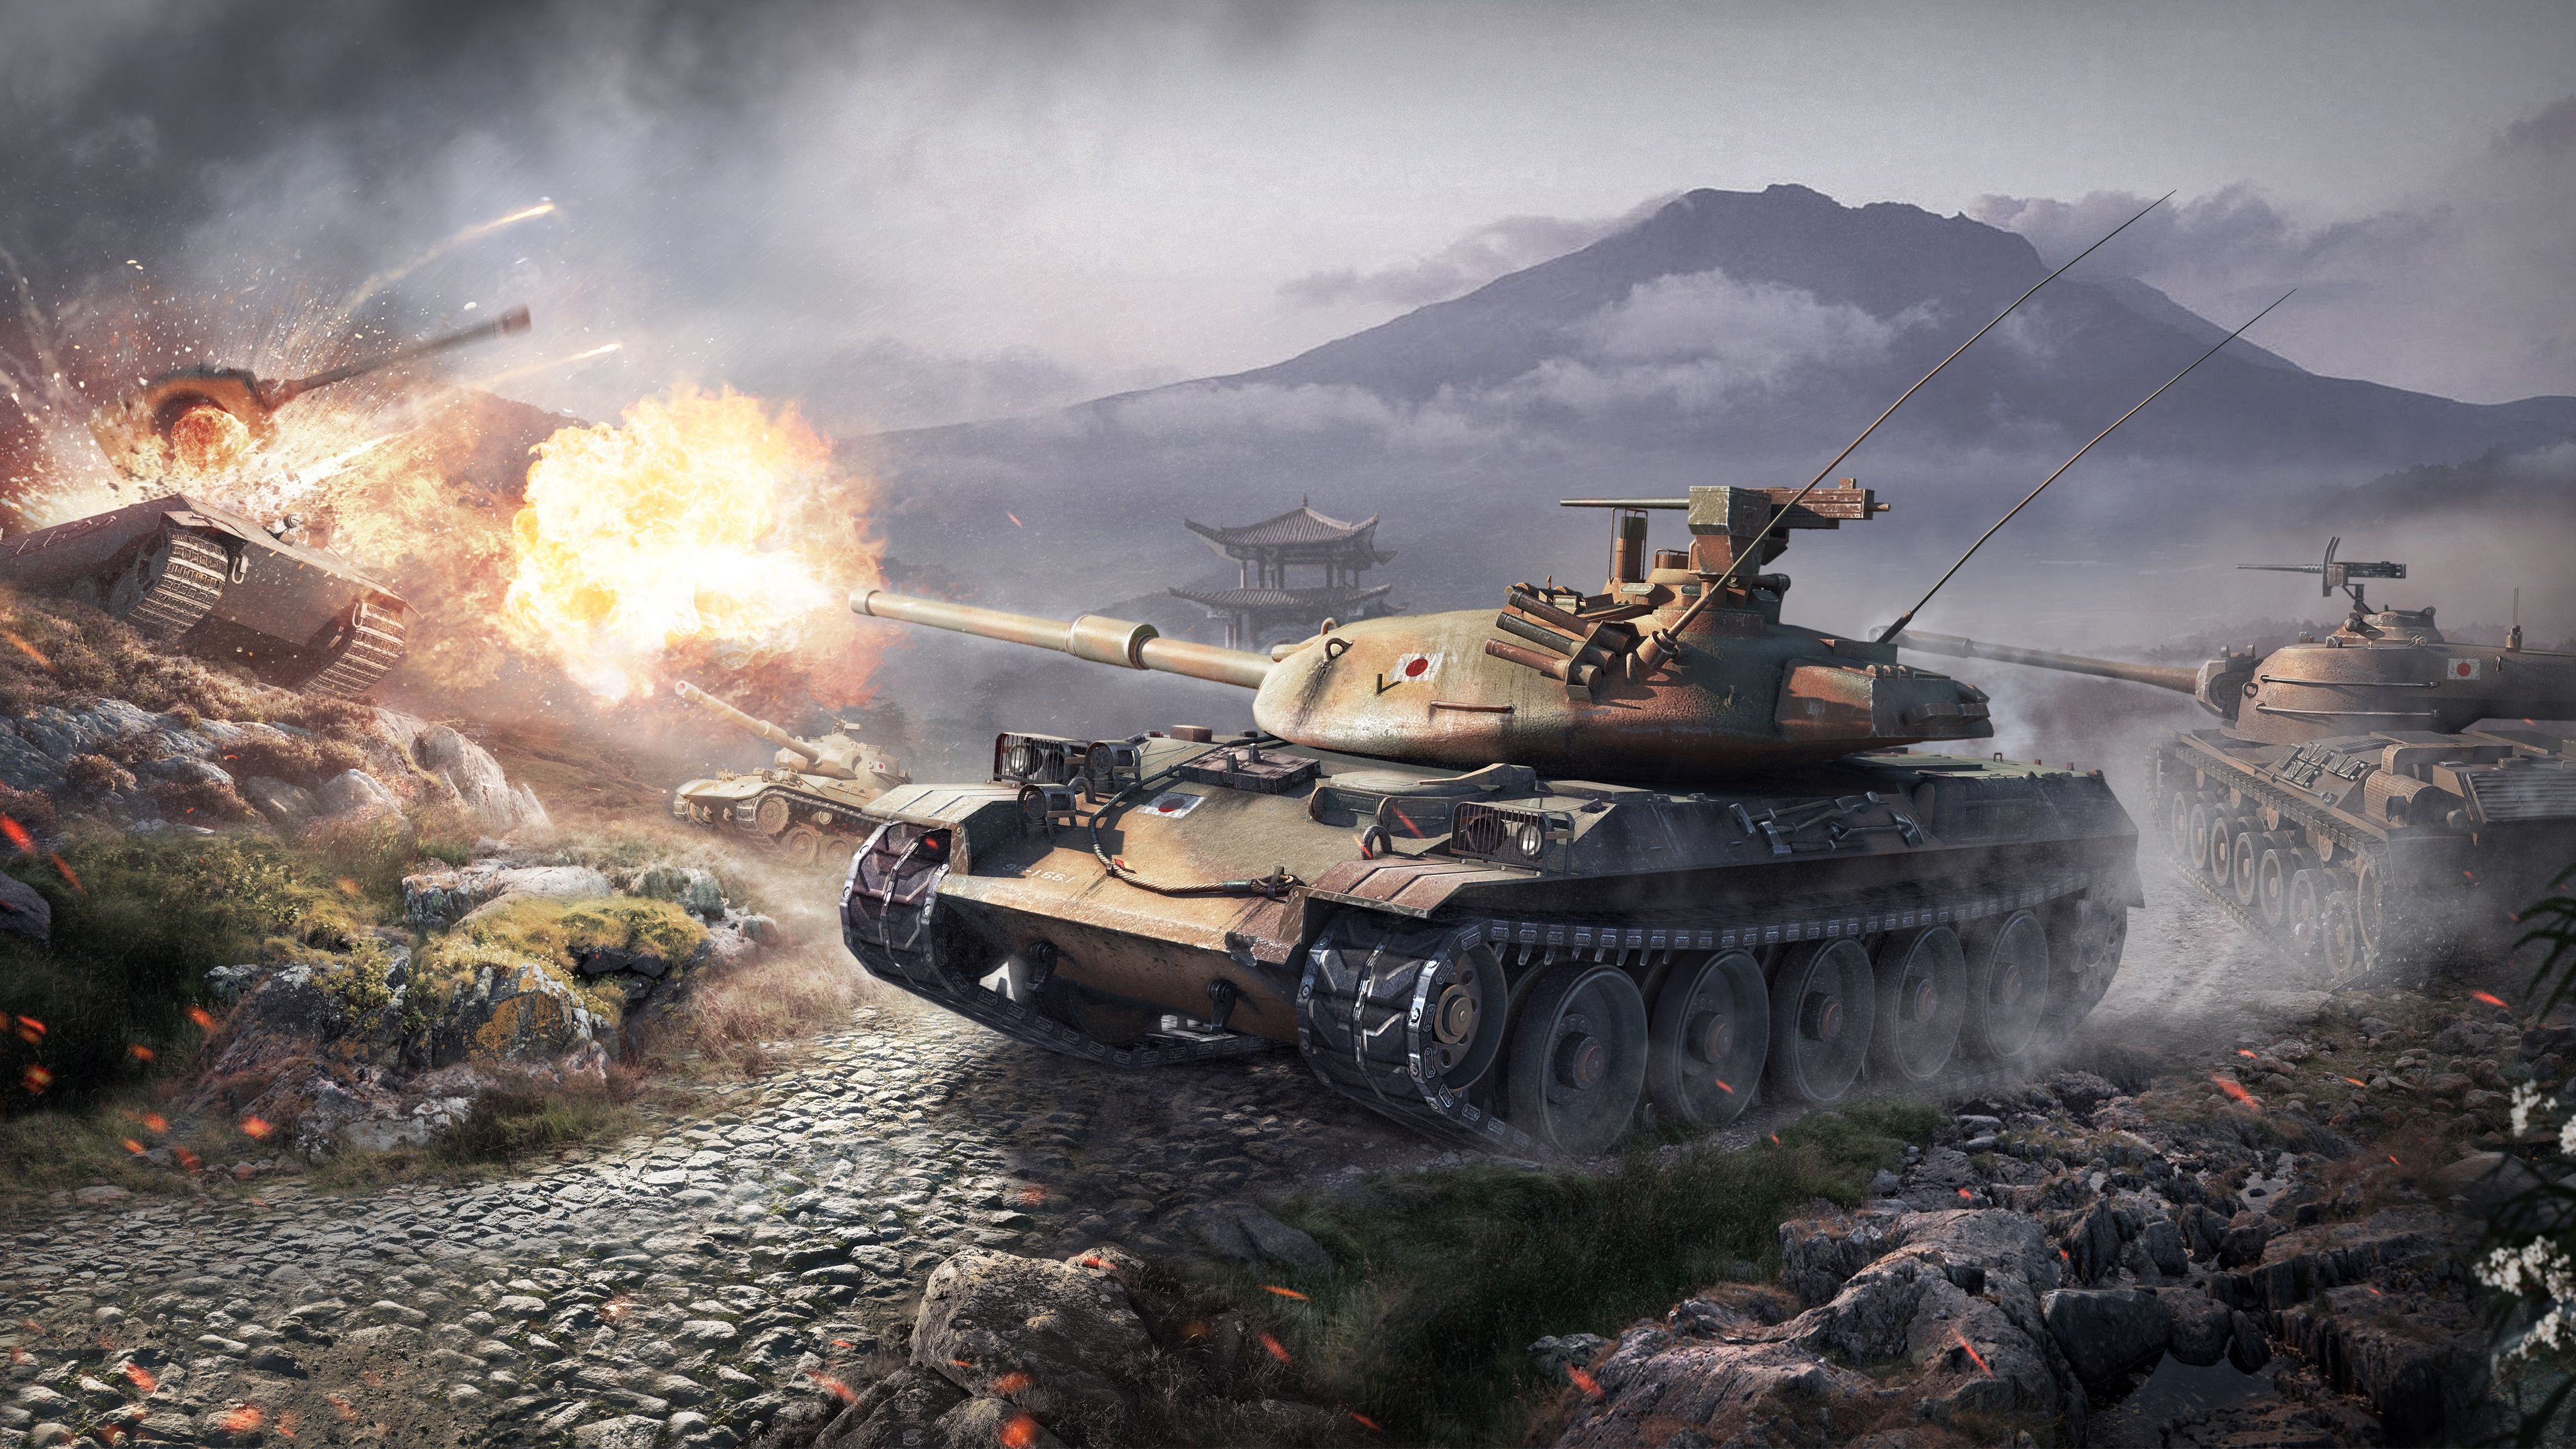 World Of Tanks Wallpapers 1920x1080 Wallpaper Cave